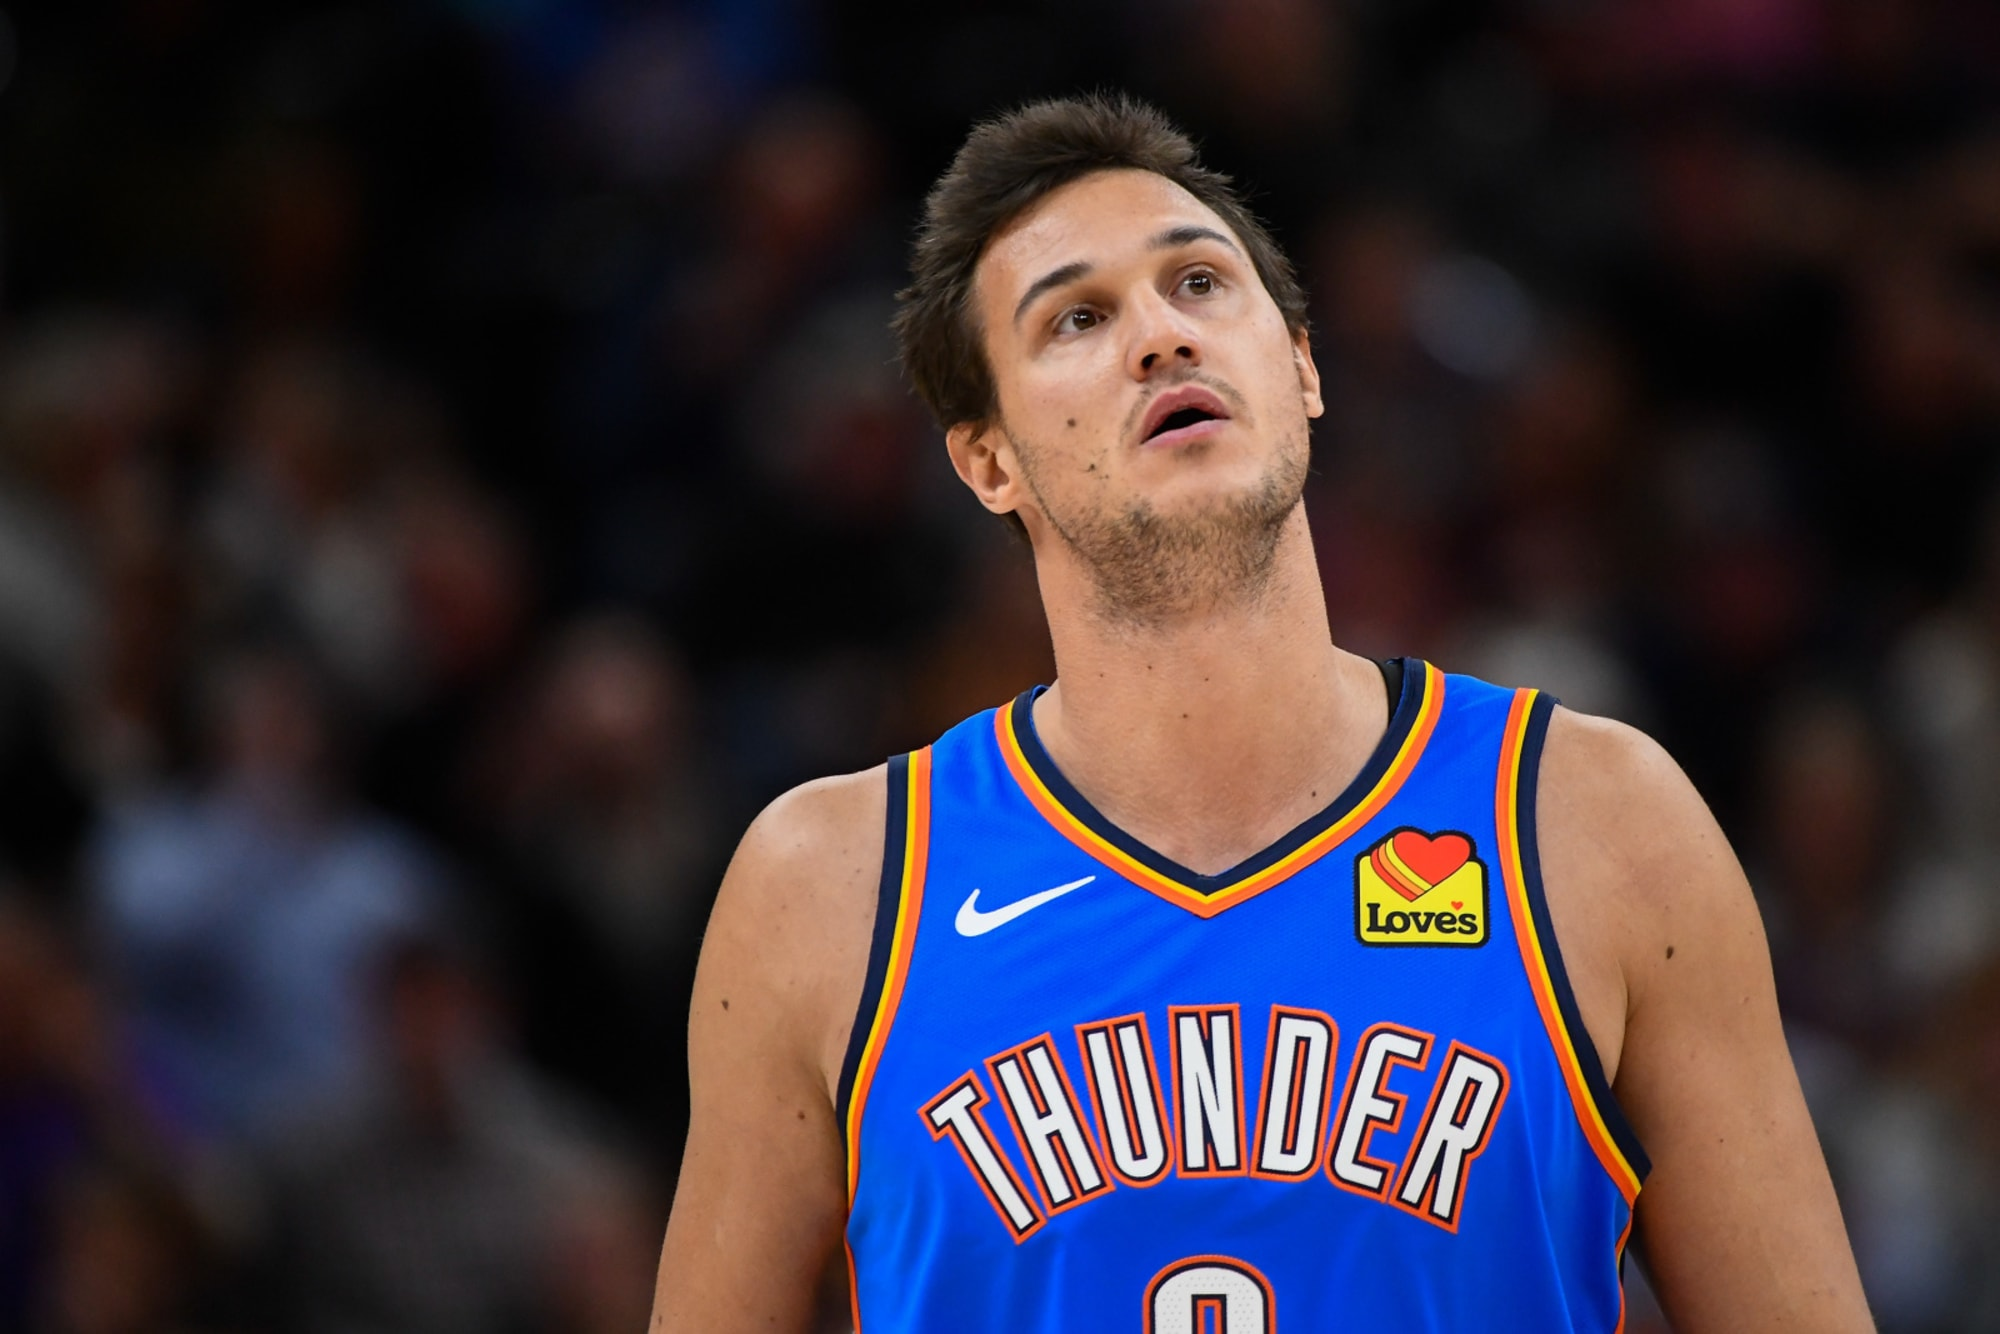 Atlanta Hawks: Danilo Gallinari's reaction to bench role shows why team signed him